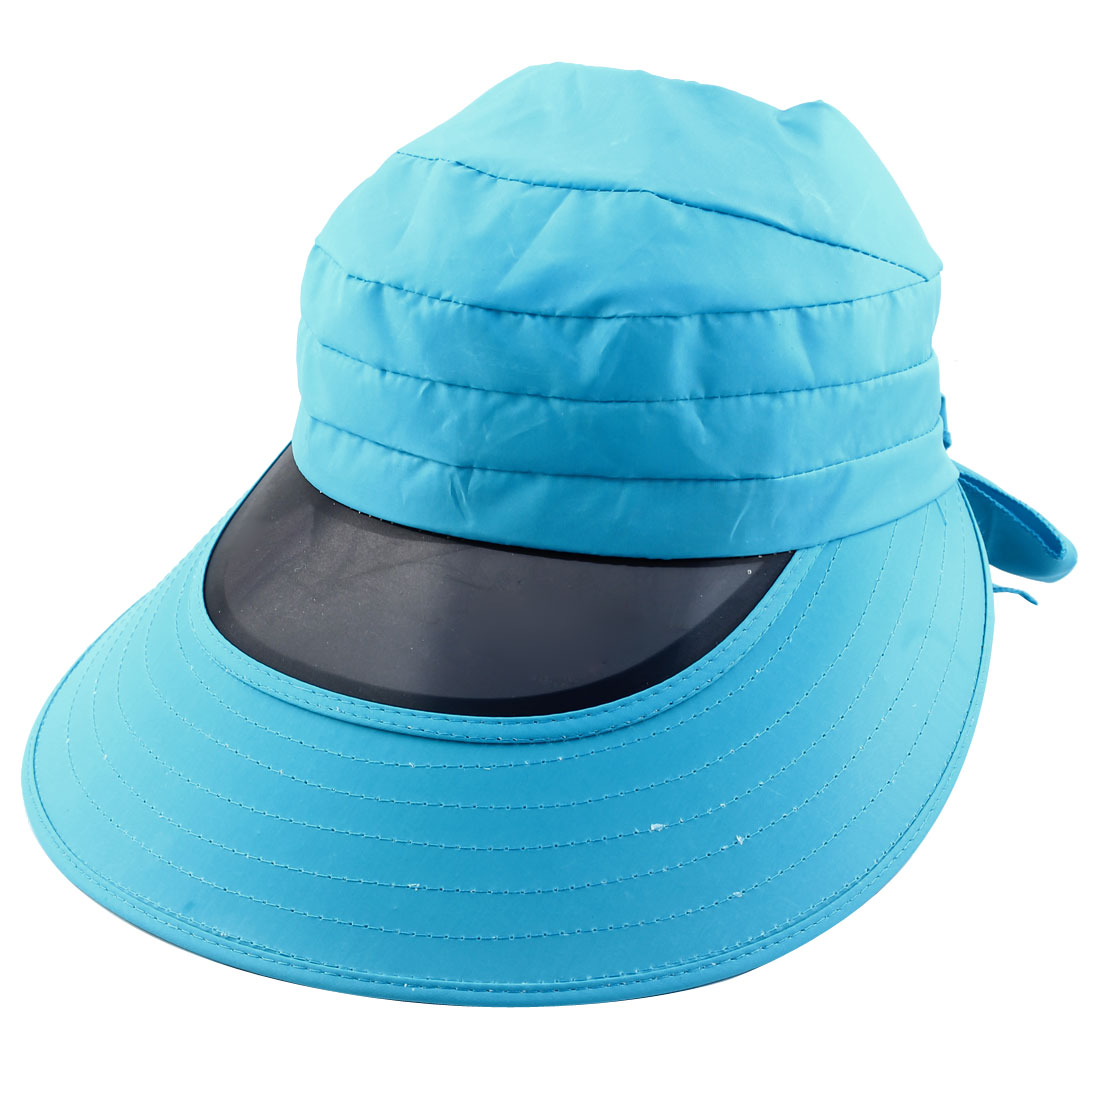 Woman Outdoor Travel Cycling Summer Beach Wide Brimmed Cap Sun Protective Visor Hat Sky Blue